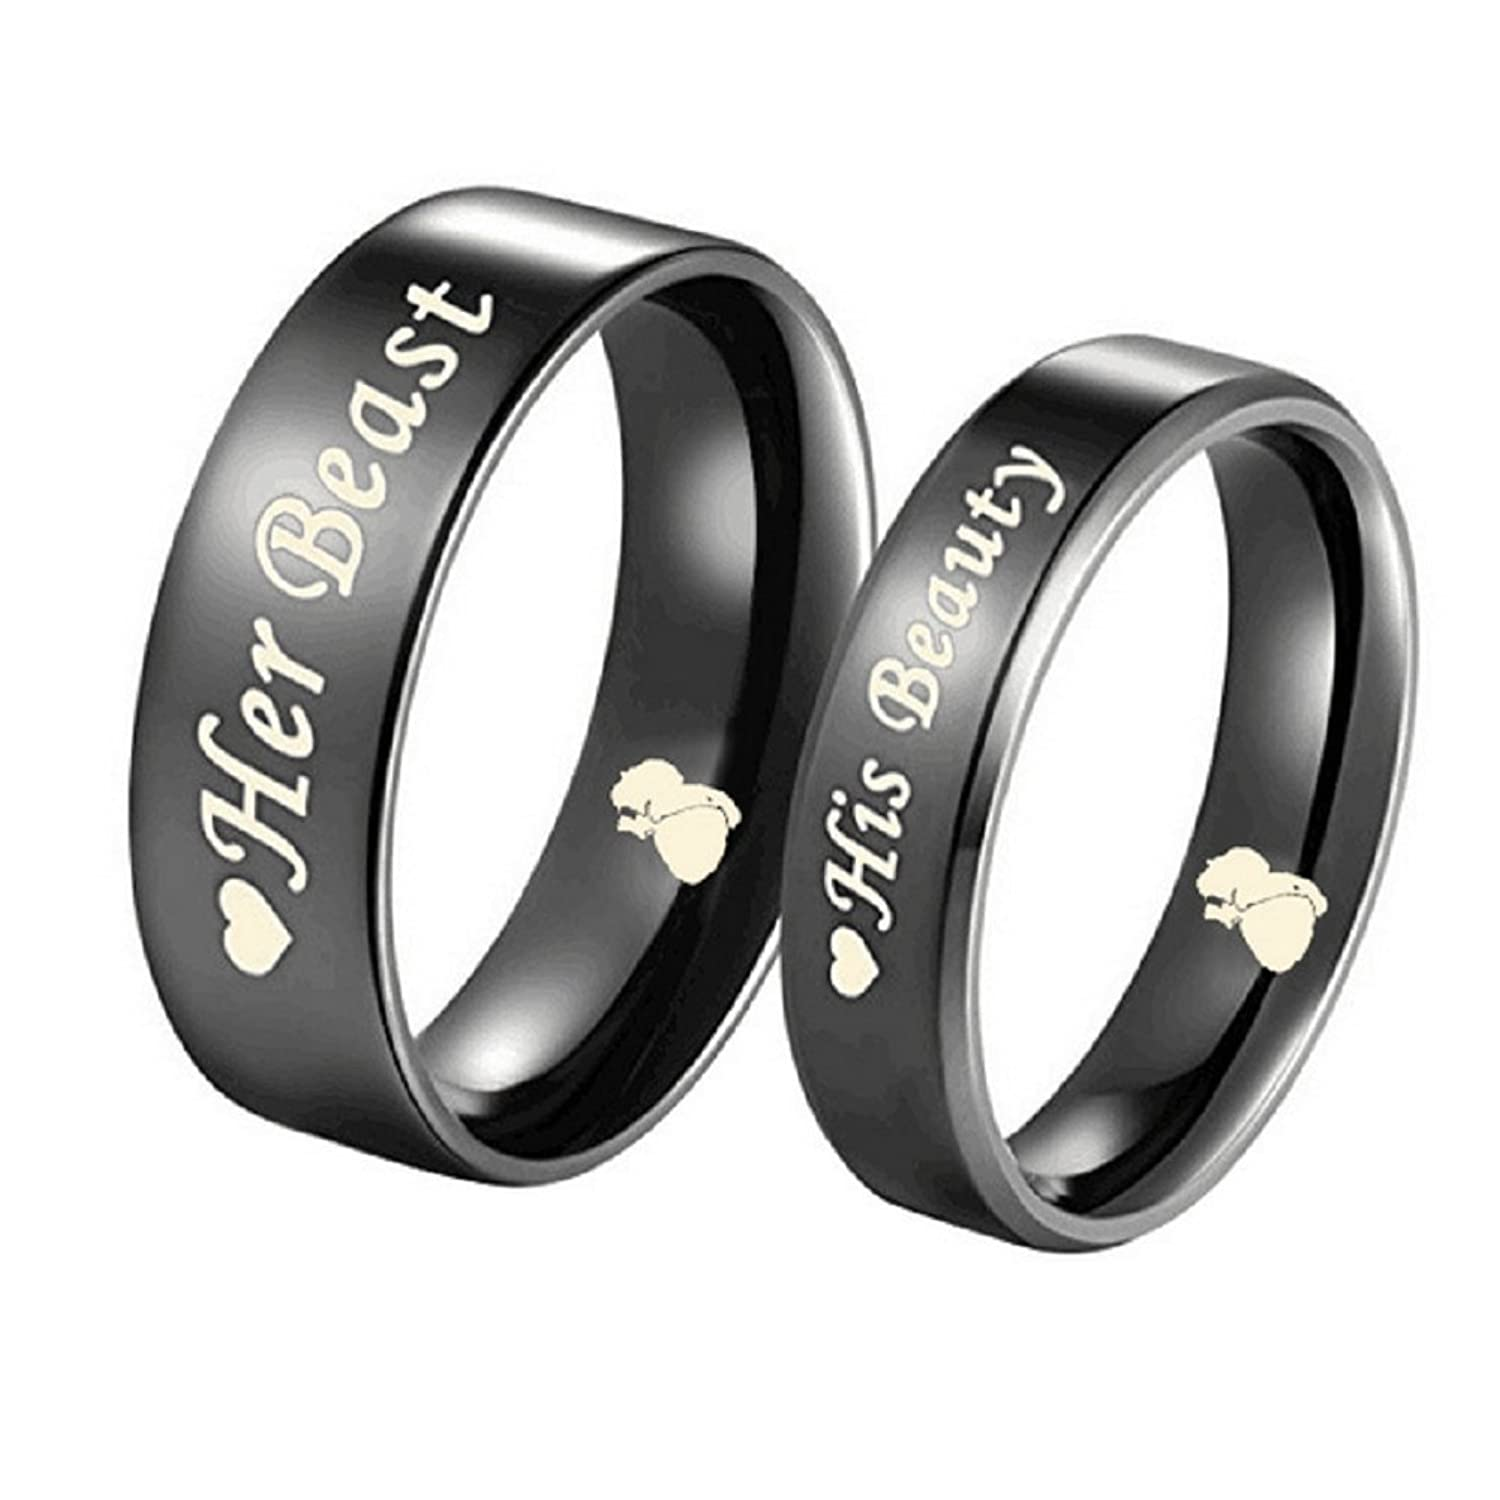 couple platinum jewelove new products in bands sj love pto india style